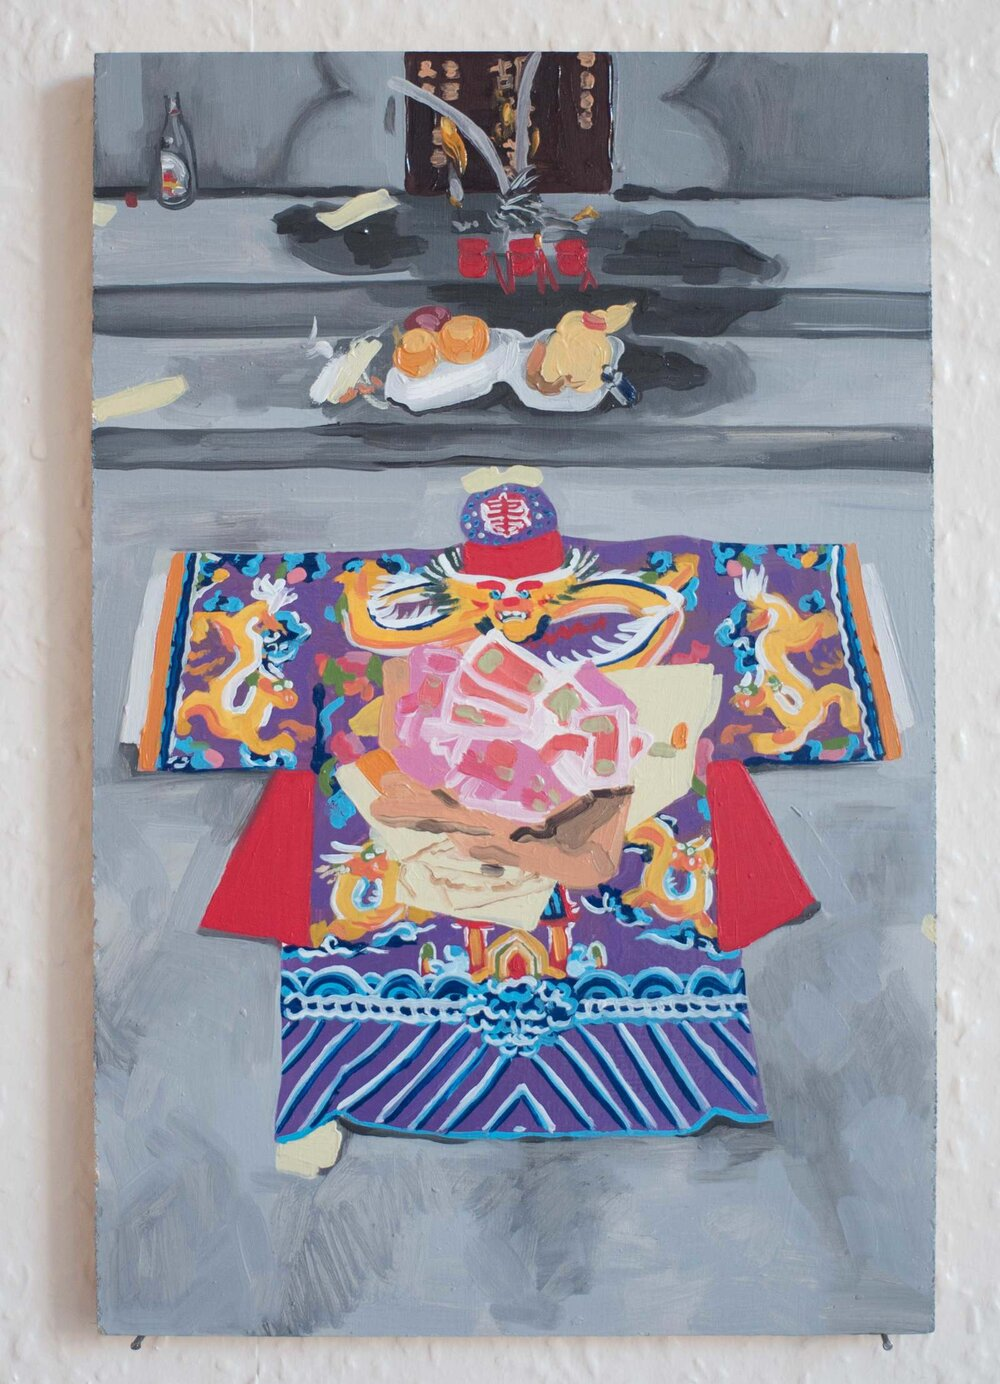 image of a painting by Karlie Wu depicting traditional chinese clothing and objects.